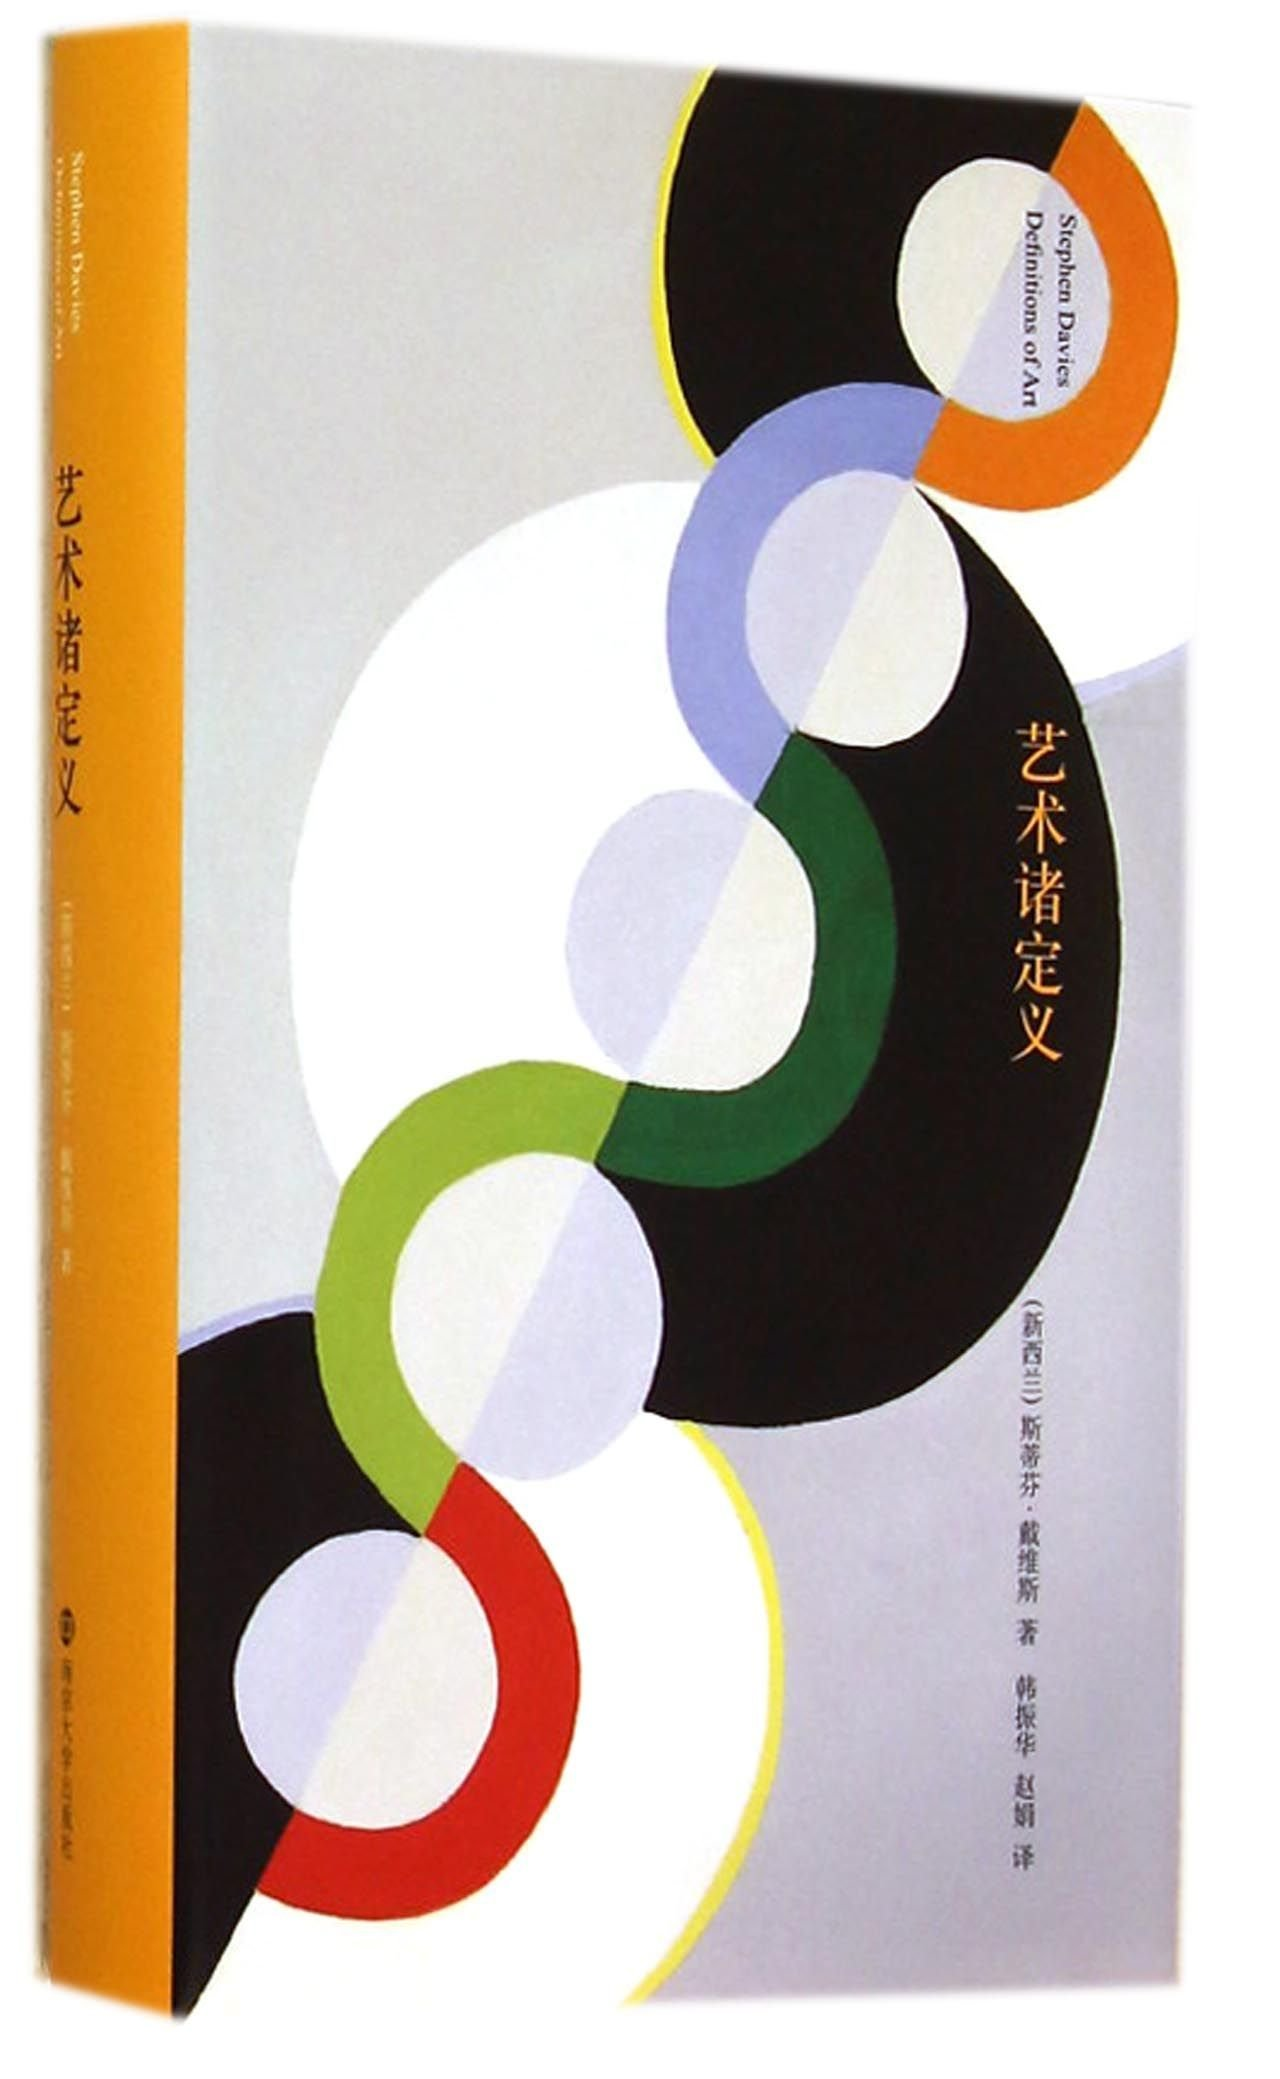 Renditions Art Zhu prism hardcover humanities definition(Chinese Edition) PDF